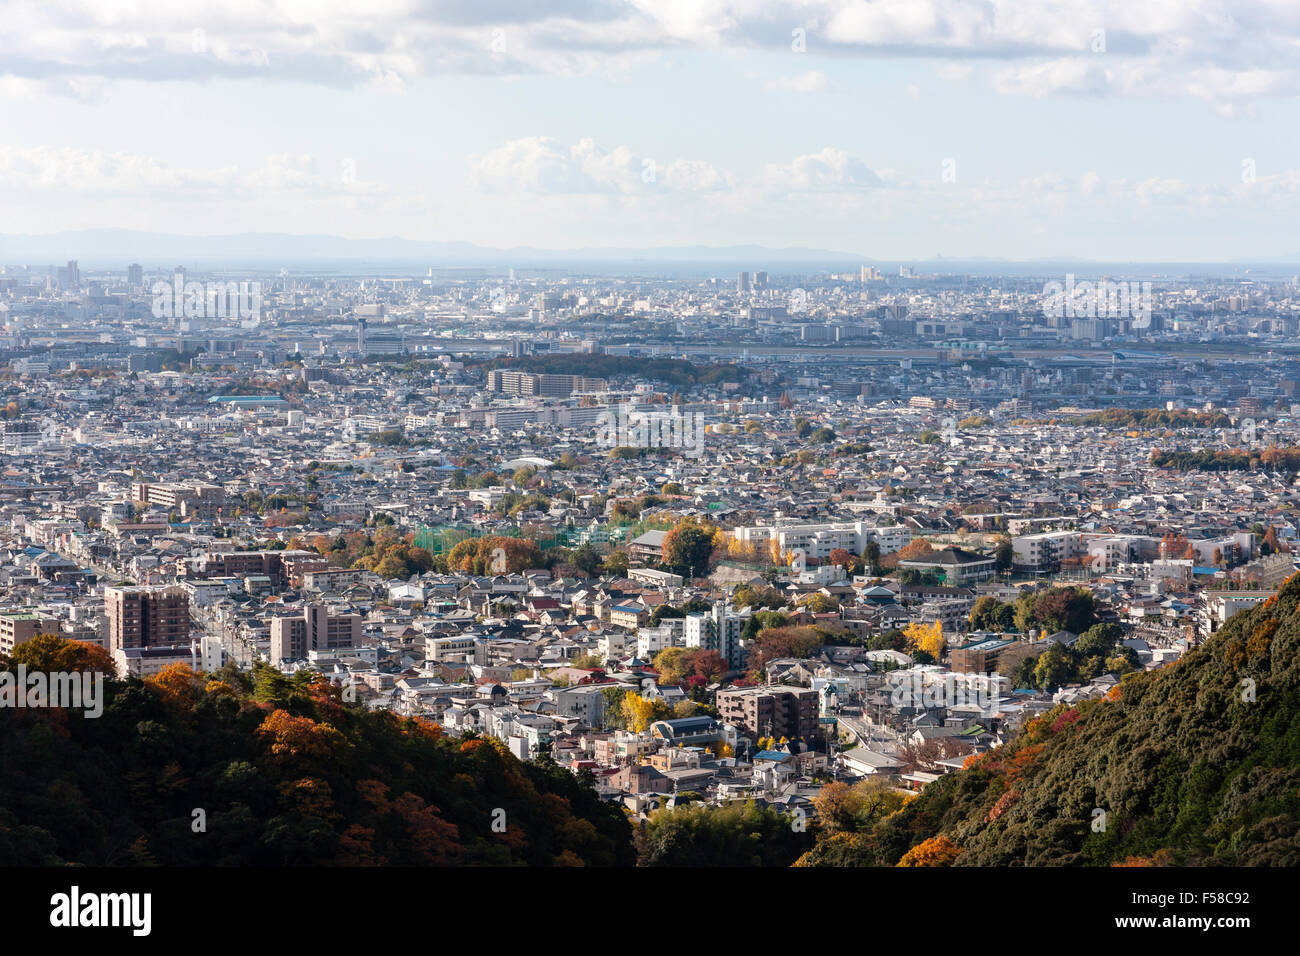 Japan, Osaka. Famous scenic view from mountains at Mino of the city sprawling to the coast. Blue sky with clouds. - Stock Image